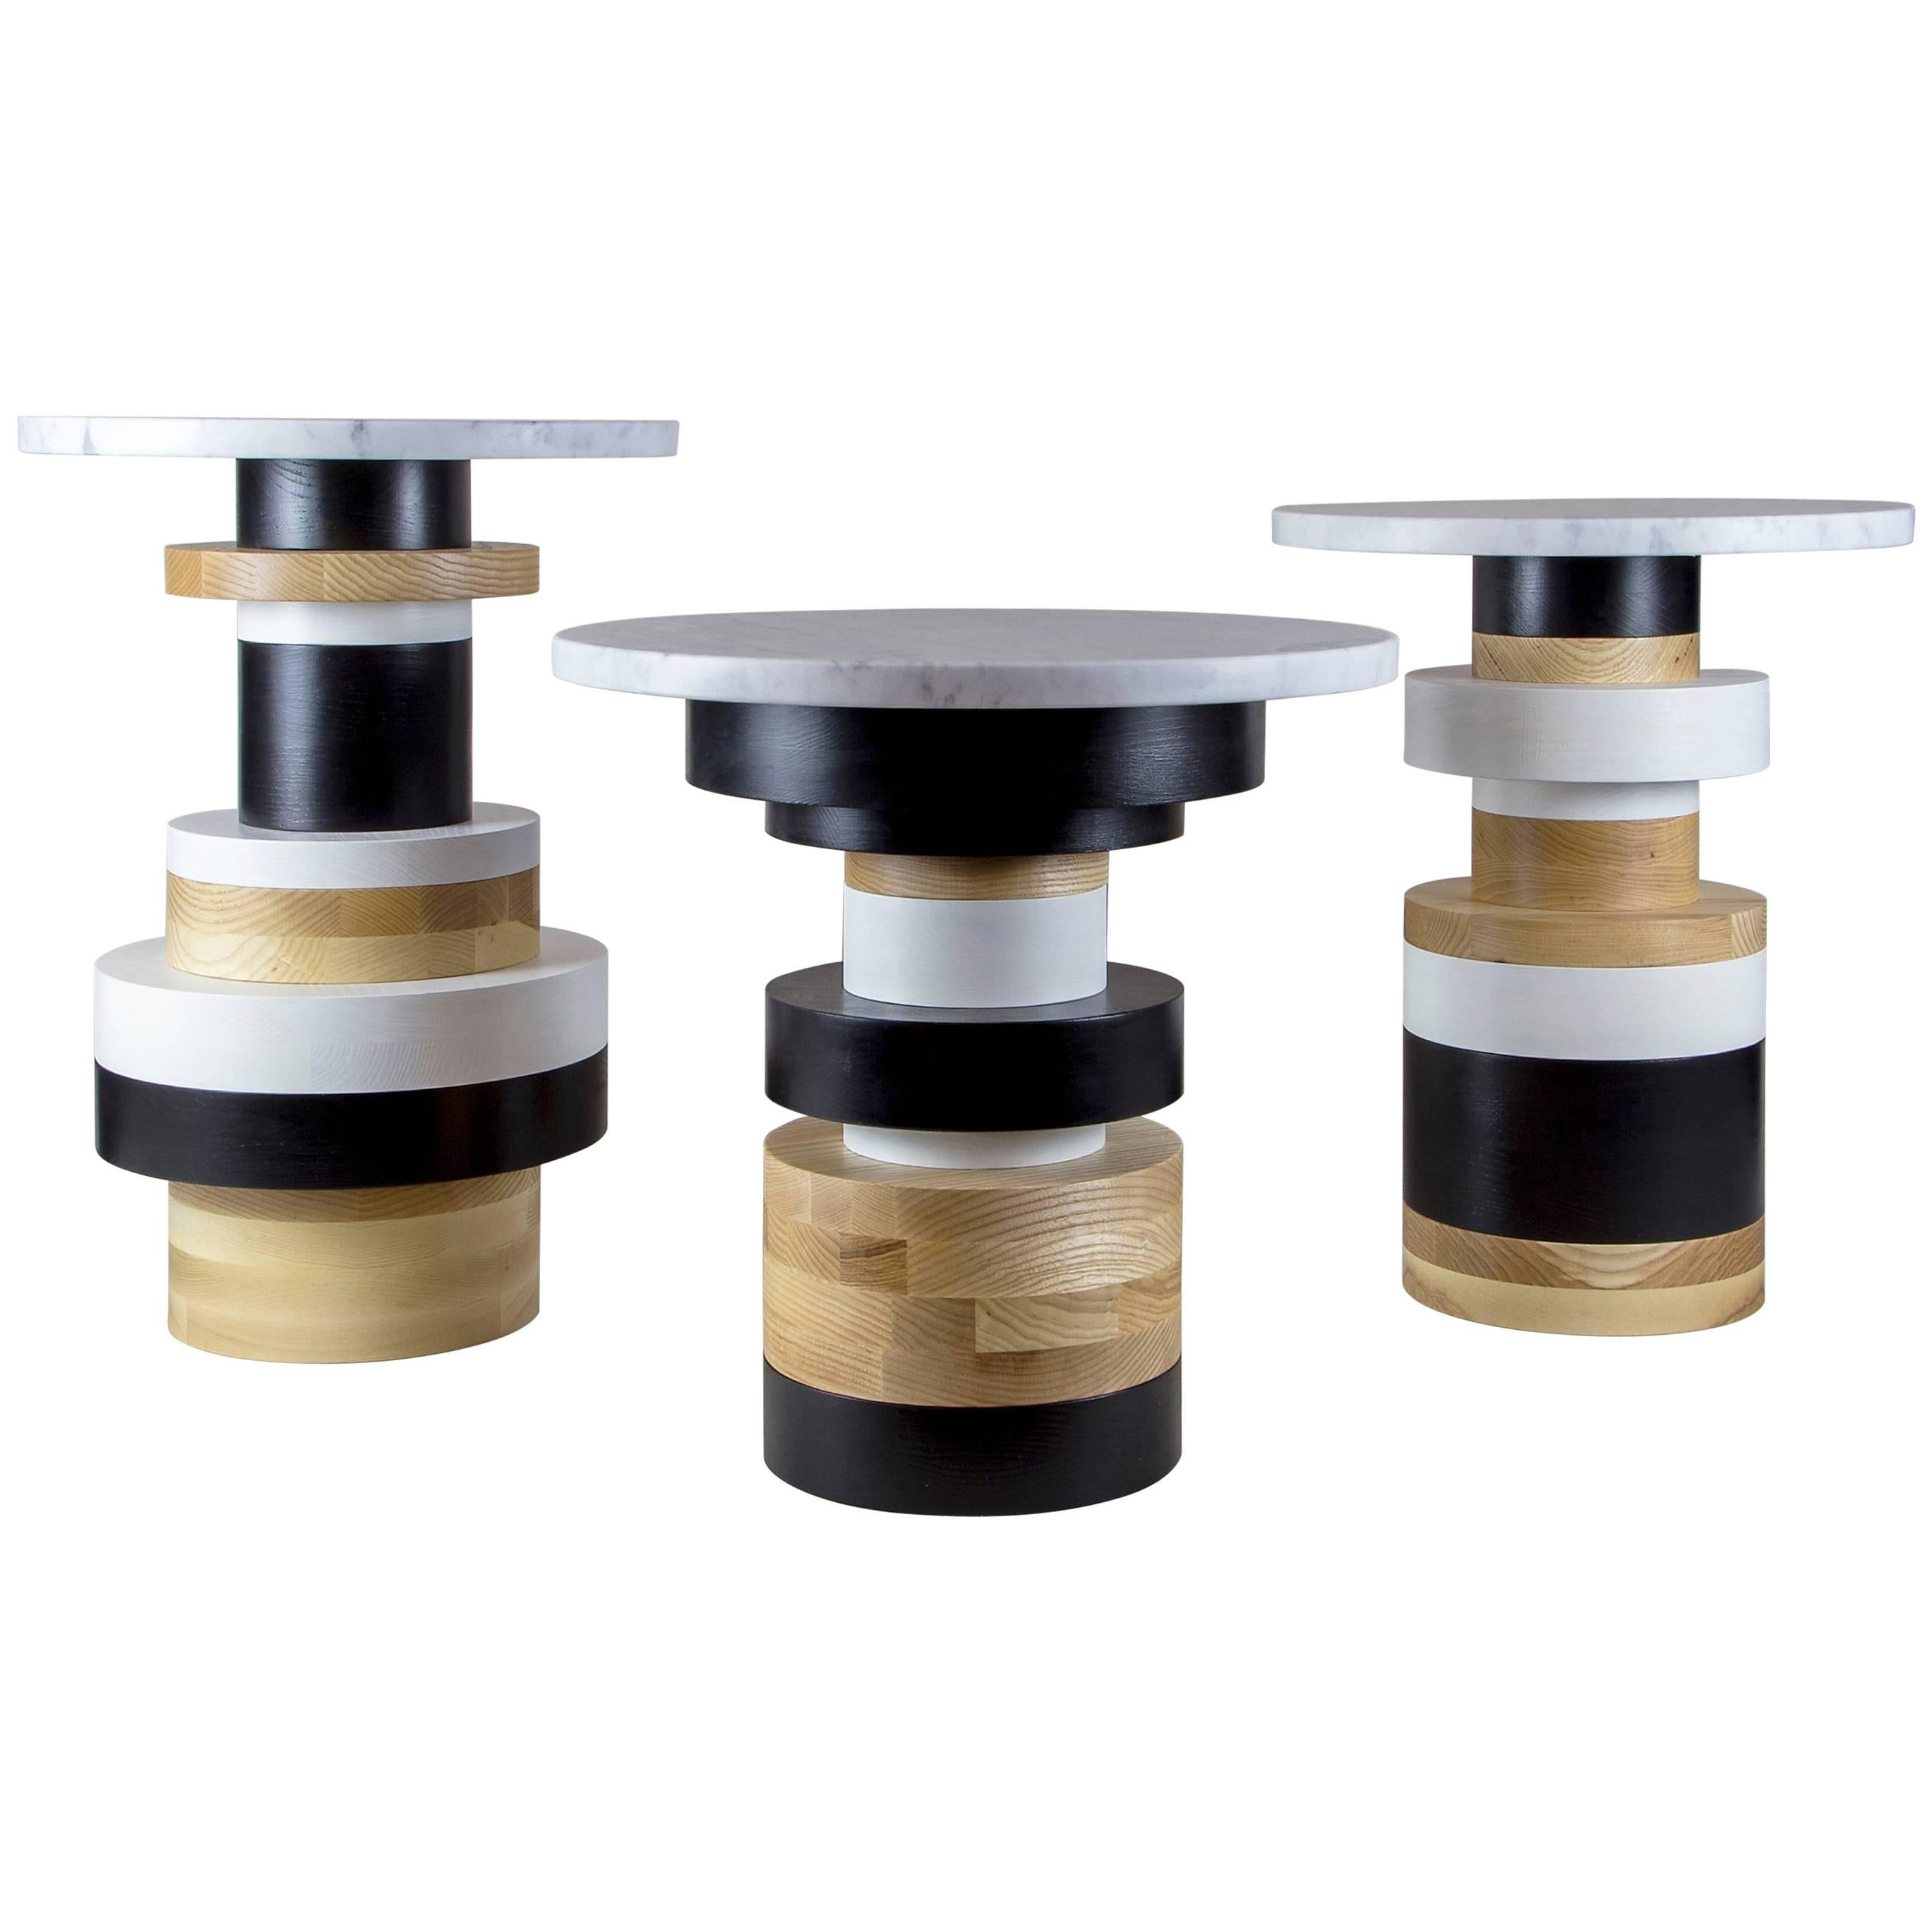 Customizable Sass Side Tables from Souda, Set of Three, Made to Order